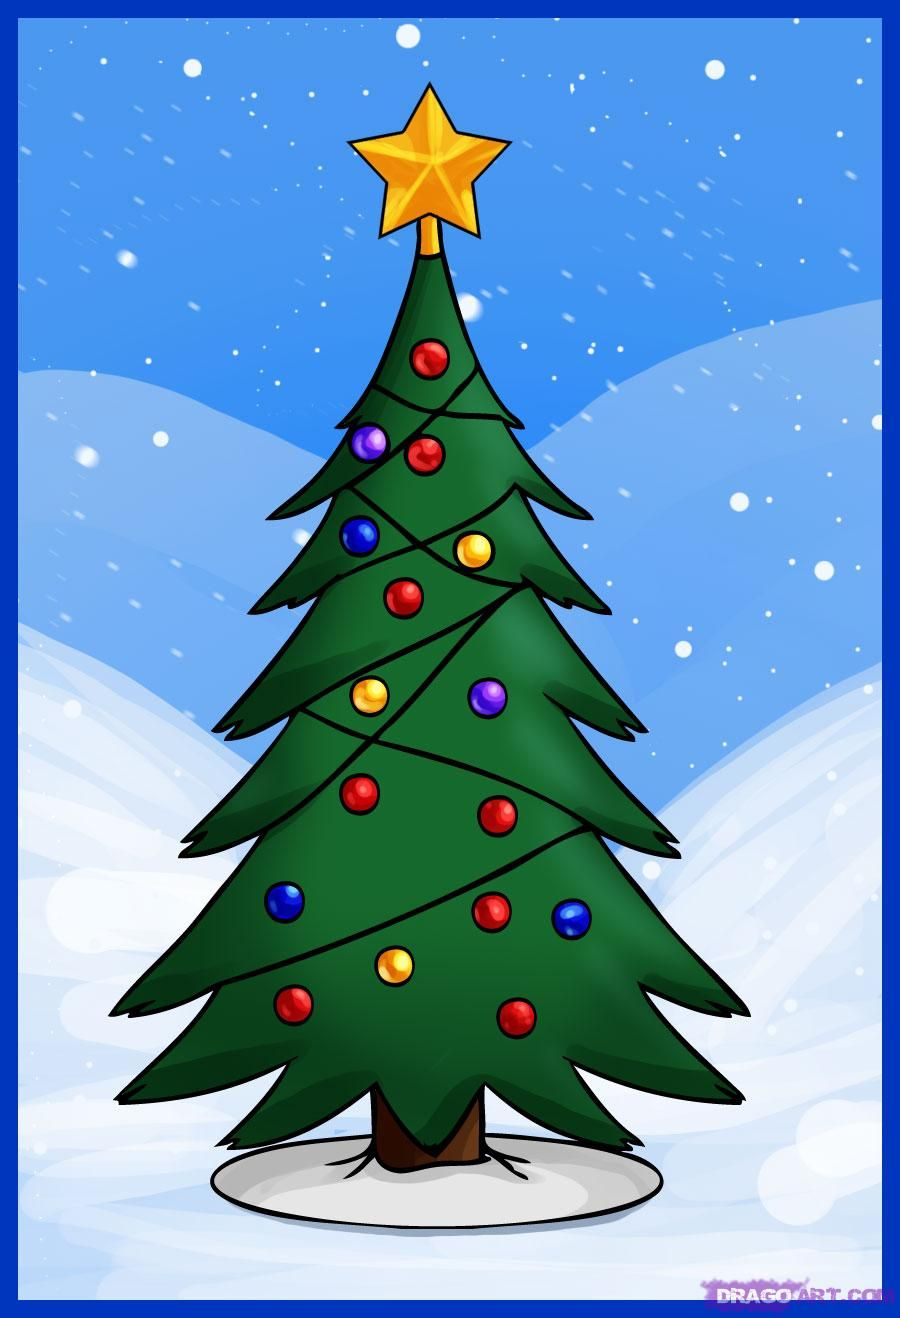 How To Draw A Christmas Tree Christmas Tree Drawing Christmas Tree Drawing Easy Cartoon Christmas Tree